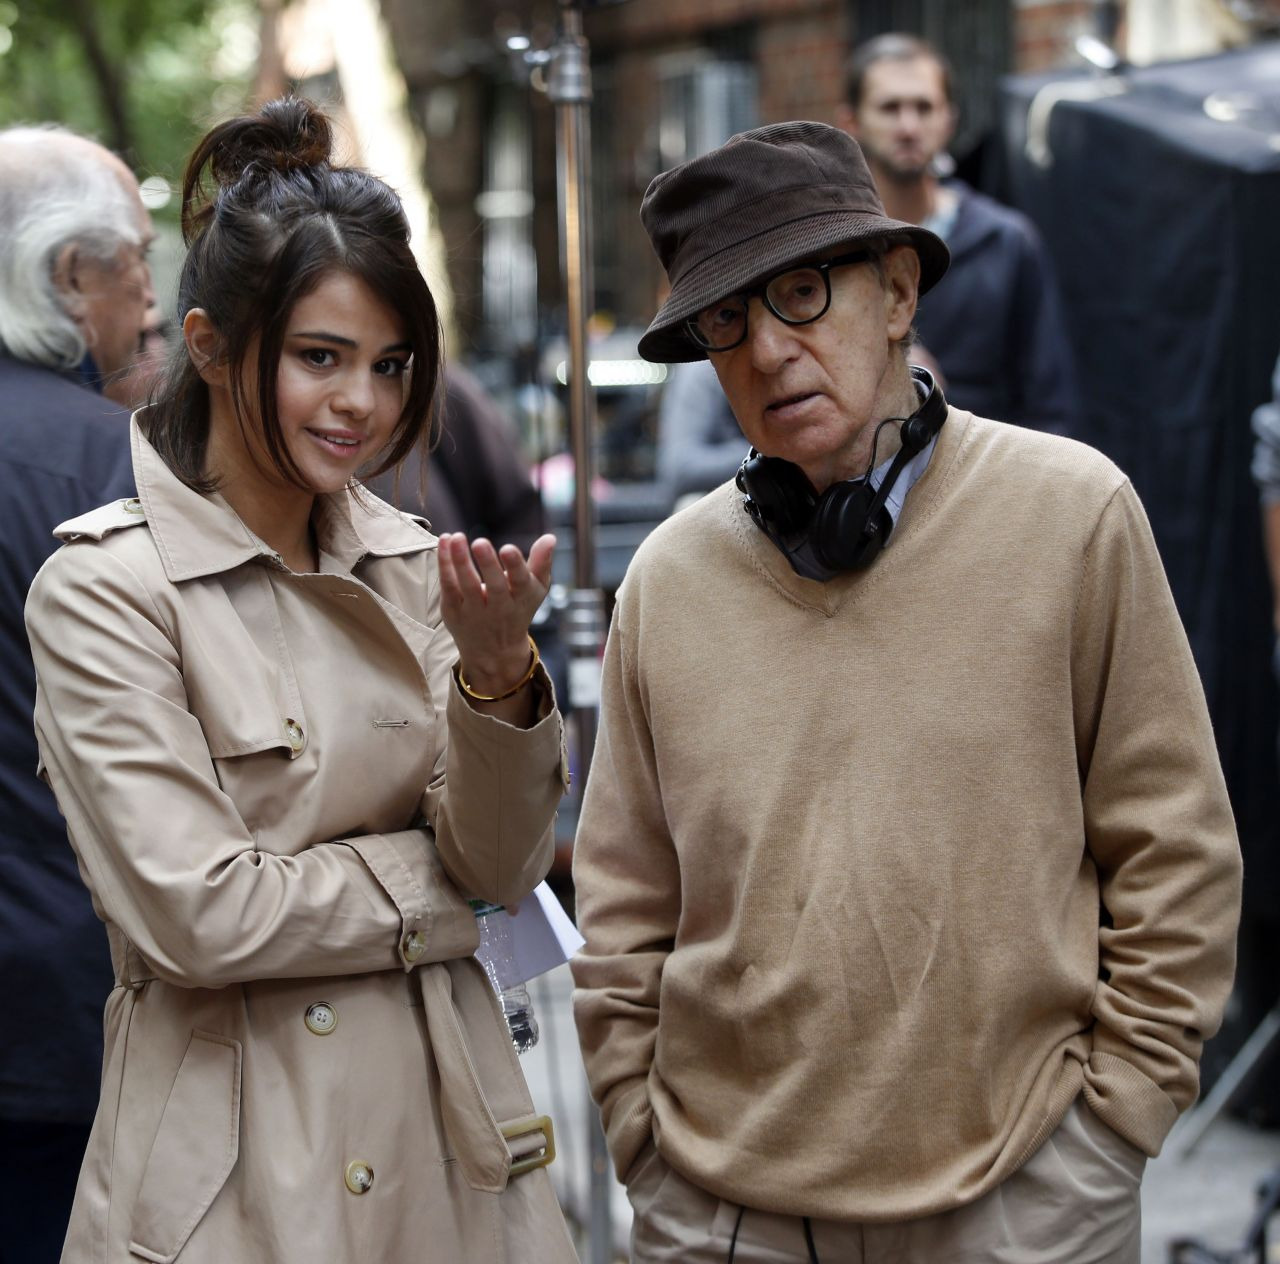 selena gomez on the set of woody allen movie in nyc 09